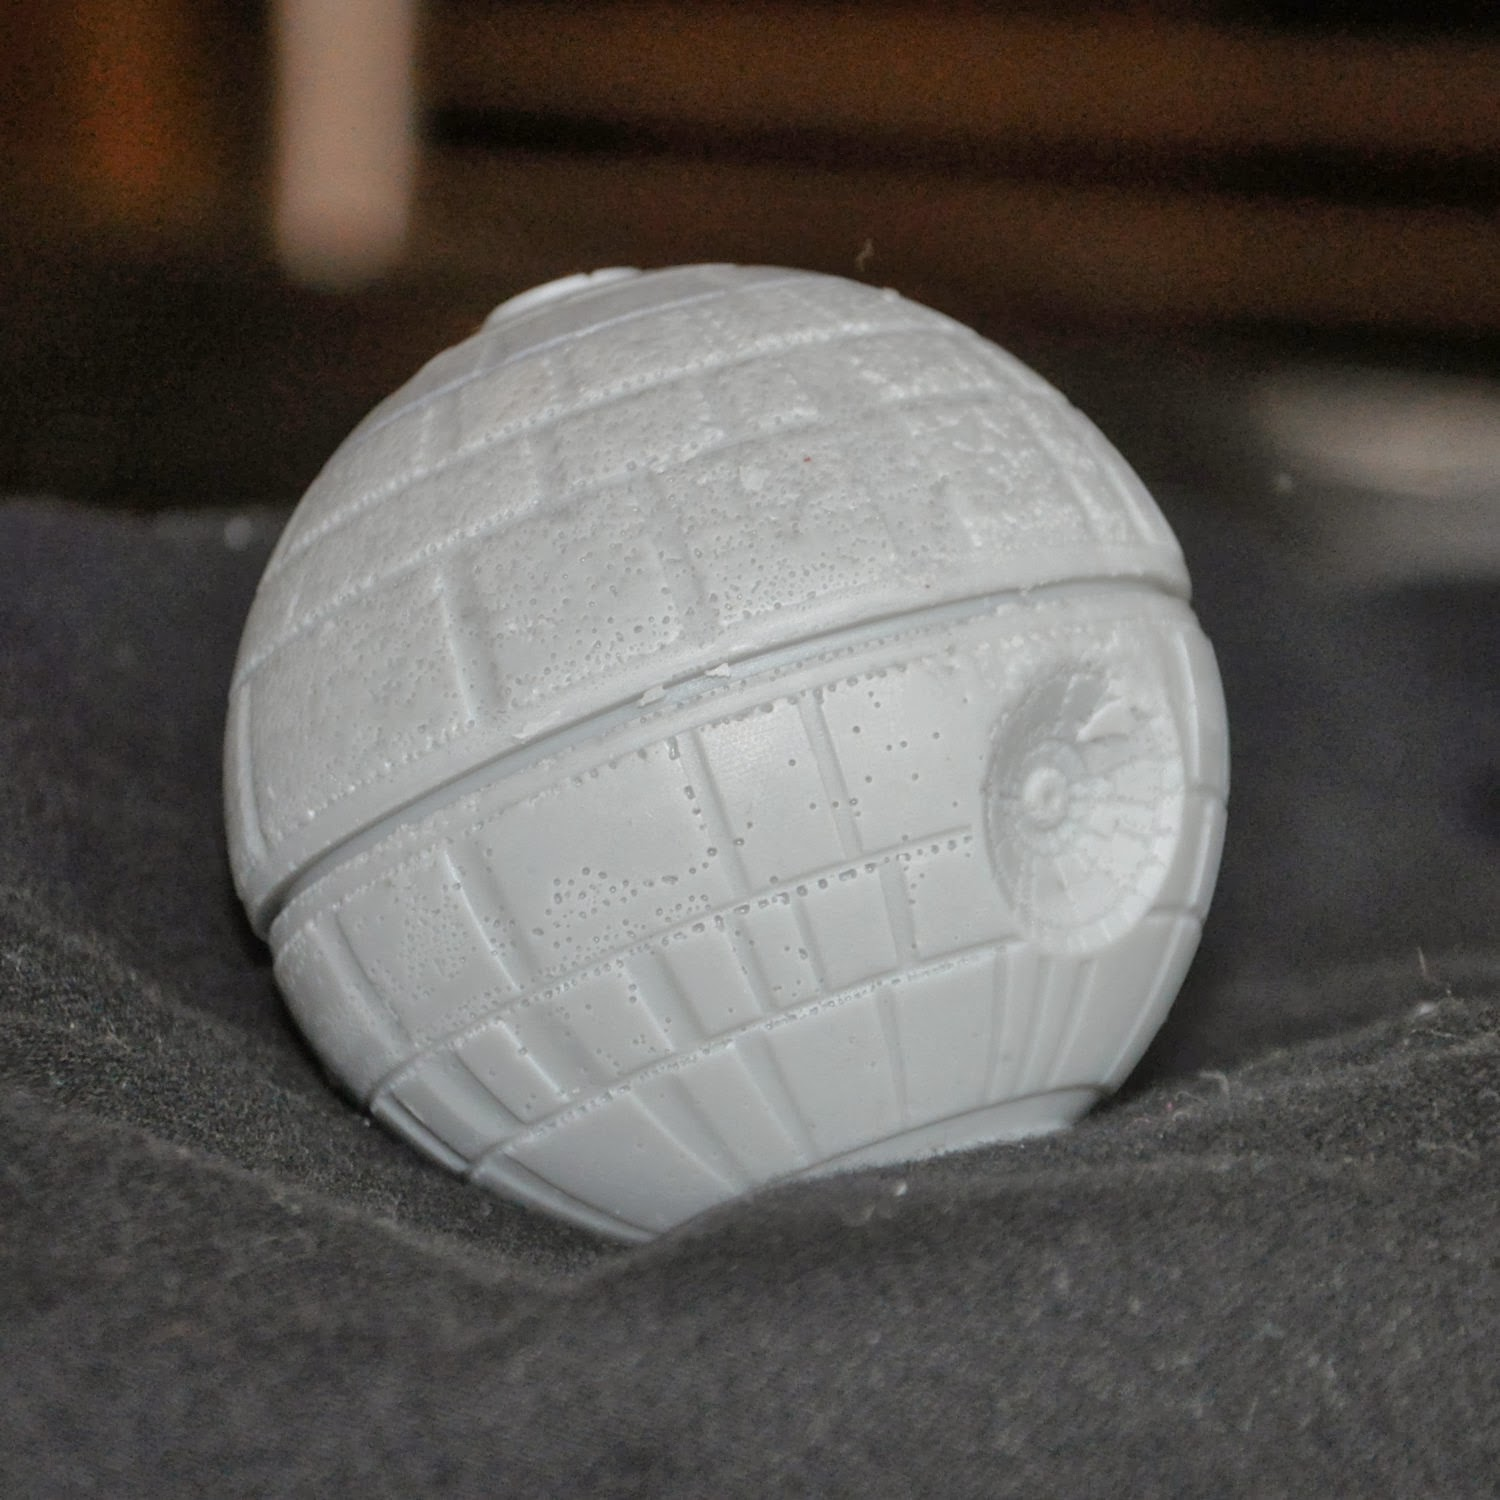 https://www.etsy.com/listing/170654629/star-wars-inspired-death-star-soap